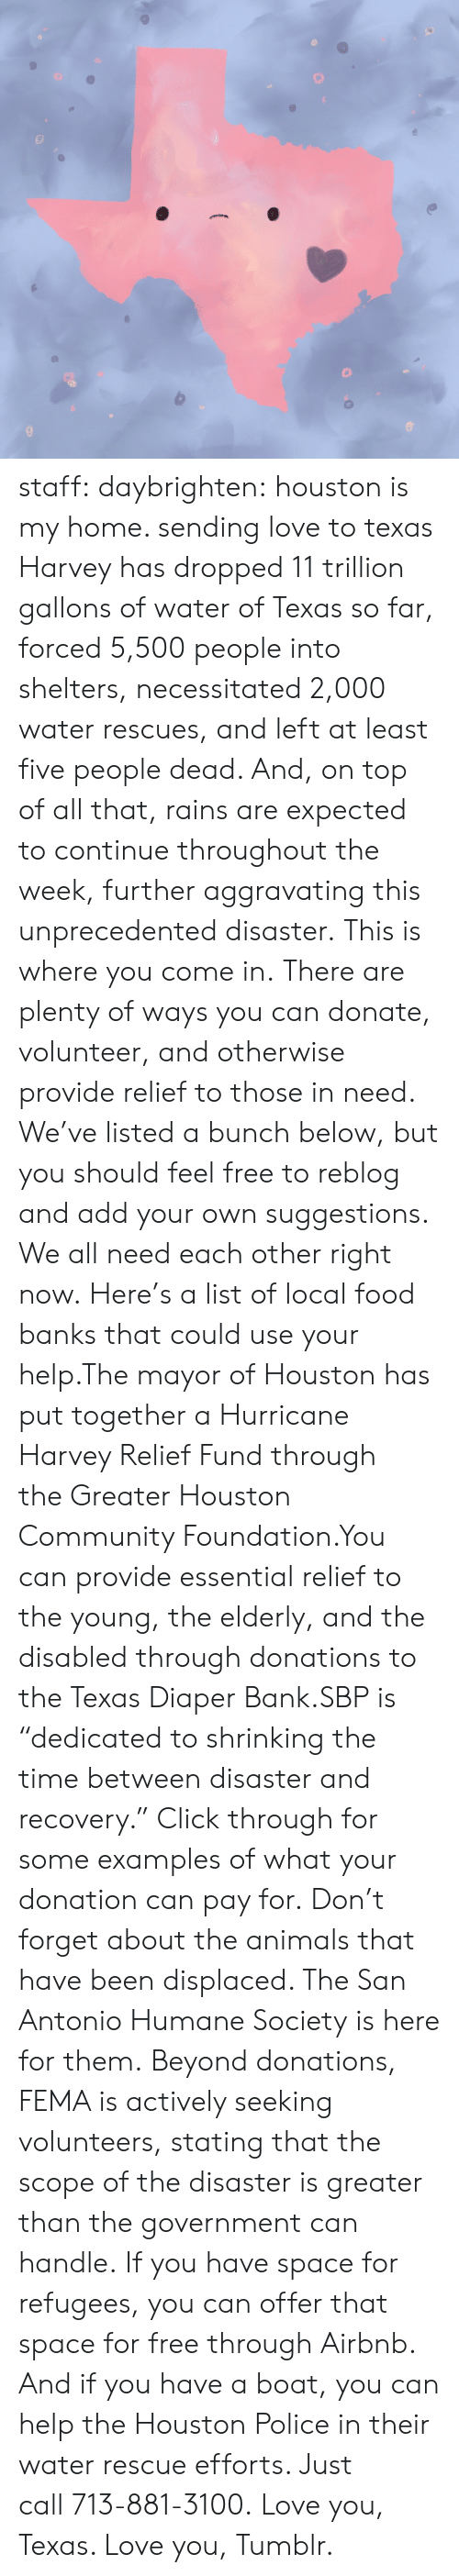 """fema: staff:  daybrighten: houston is my home. sending love to texas Harvey has dropped 11 trillion gallons of water of Texas so far, forced 5,500 people into shelters, necessitated 2,000 water rescues, and left at least five people dead. And, on top of all that, rains are expected to continue throughout the week, further aggravating this unprecedented disaster.This is where you come in.There are plenty of ways you can donate, volunteer, and otherwise provide relief to those in need. We've listed a bunch below, but you should feel free to reblog and add your own suggestions. We all need each other right now.Here's a list of local food banksthat could use your help.The mayor of Houston has put together a Hurricane Harvey Relief Fund through theGreater Houston Community Foundation.You can provide essential relief to the young, the elderly, and the disabled through donations to theTexas Diaper Bank.SBPis """"dedicated to shrinking the time between disaster and recovery."""" Click through for some examples of what your donation can pay for.Don't forget about the animals that have been displaced. TheSan Antonio Humane Societyis here for them.Beyond donations, FEMA is actively seeking volunteers, stating that the scope of the disaster is greater than the government can handle.If you have space for refugees, you can offer that space for free through Airbnb. And if you have a boat, you can help the Houston Police in their water rescue efforts. Just call713-881-3100.Love you, Texas. Love you, Tumblr."""